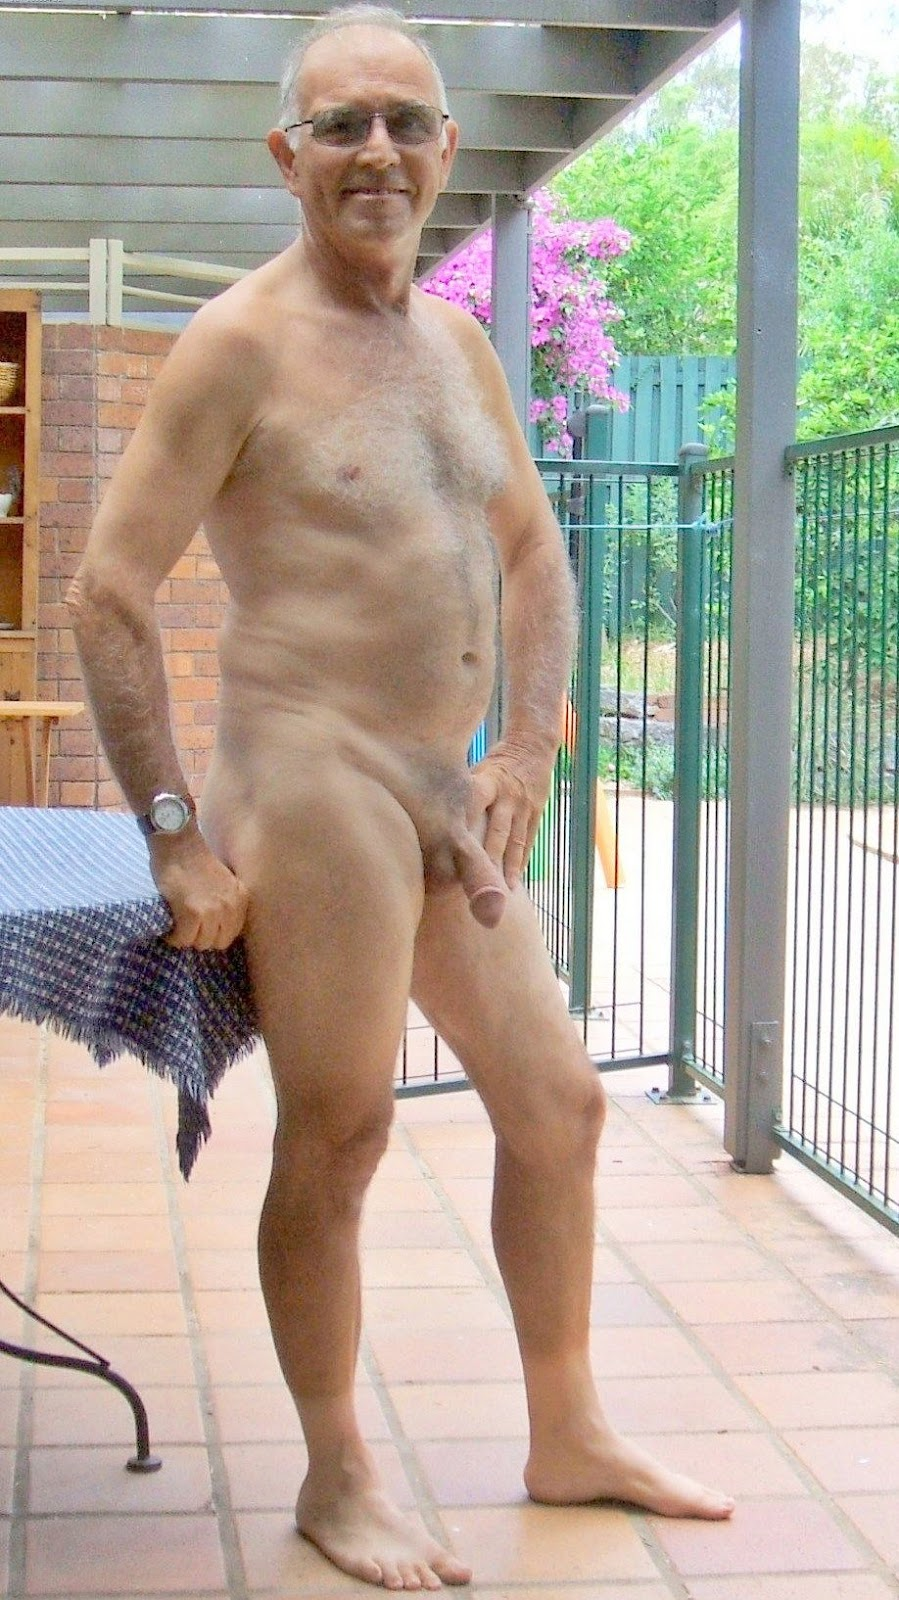 Gay senior naked man, topless cyprus babes